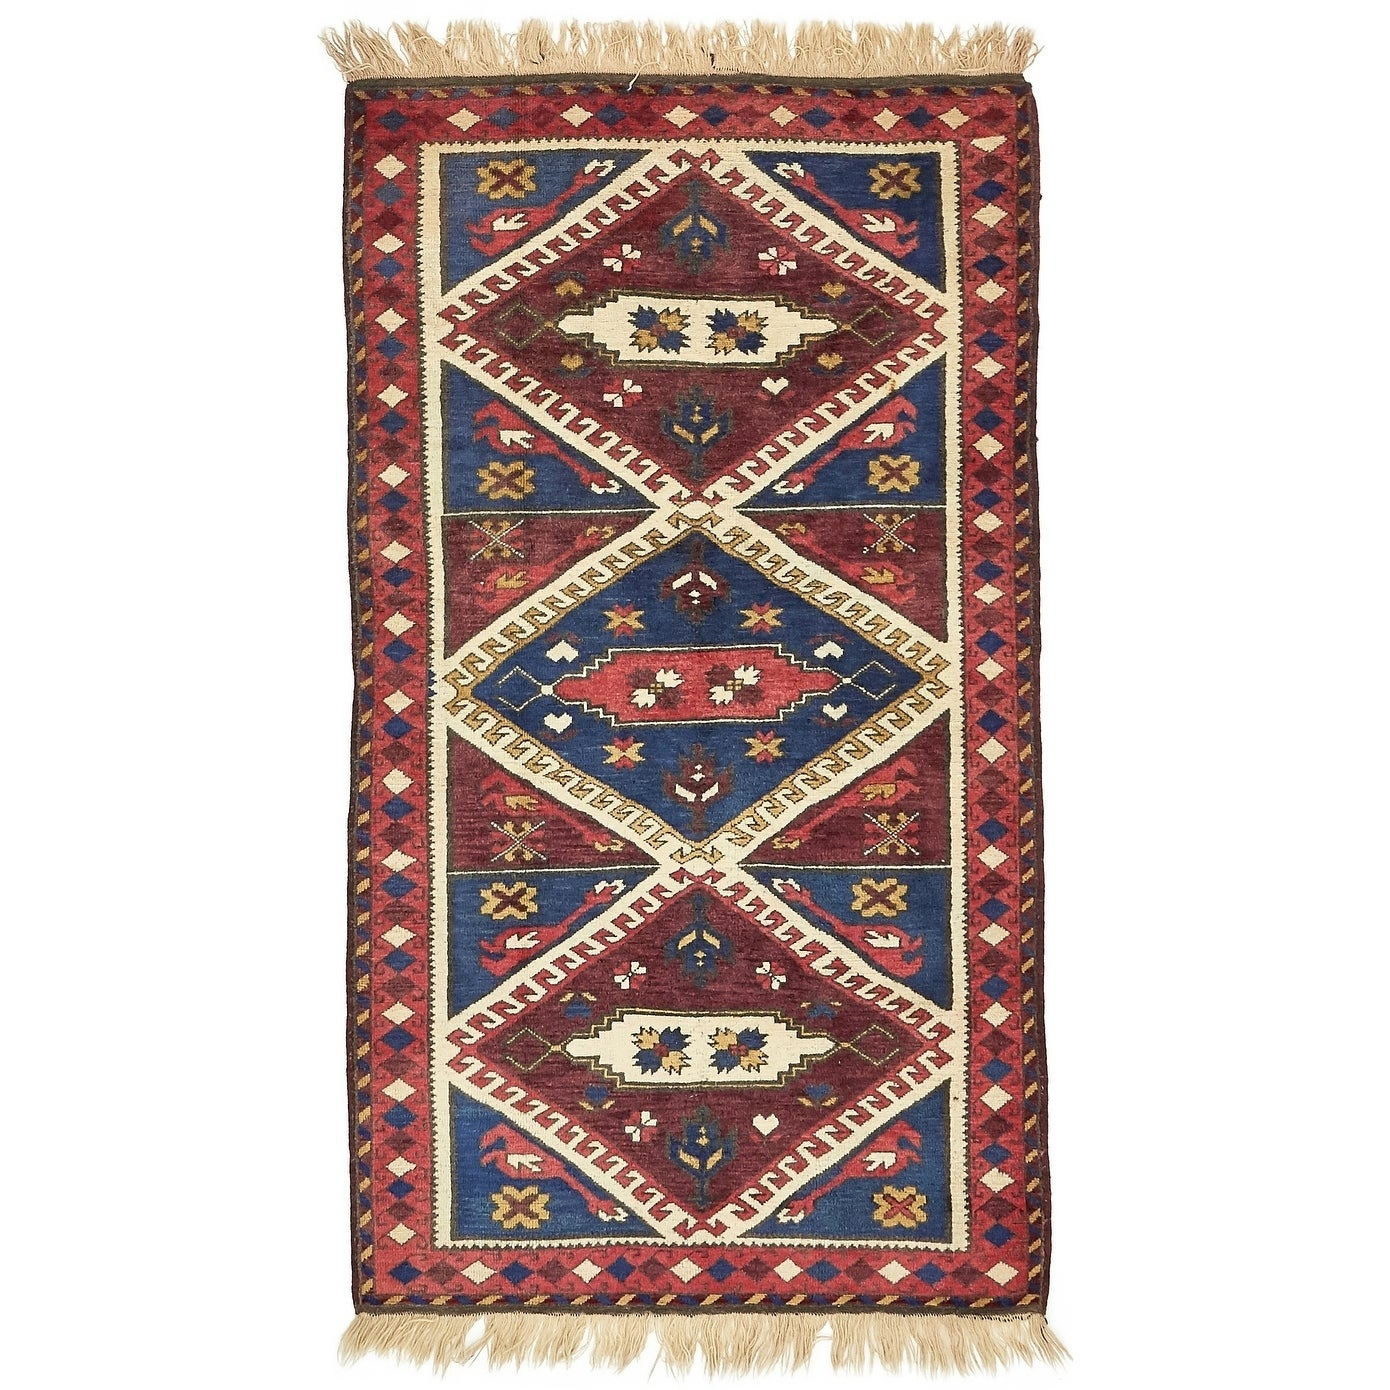 Hand Knotted Kars Wool Area Rug - 3' 7 x 6' 5 (Red - 3' 7 x 6' 5)